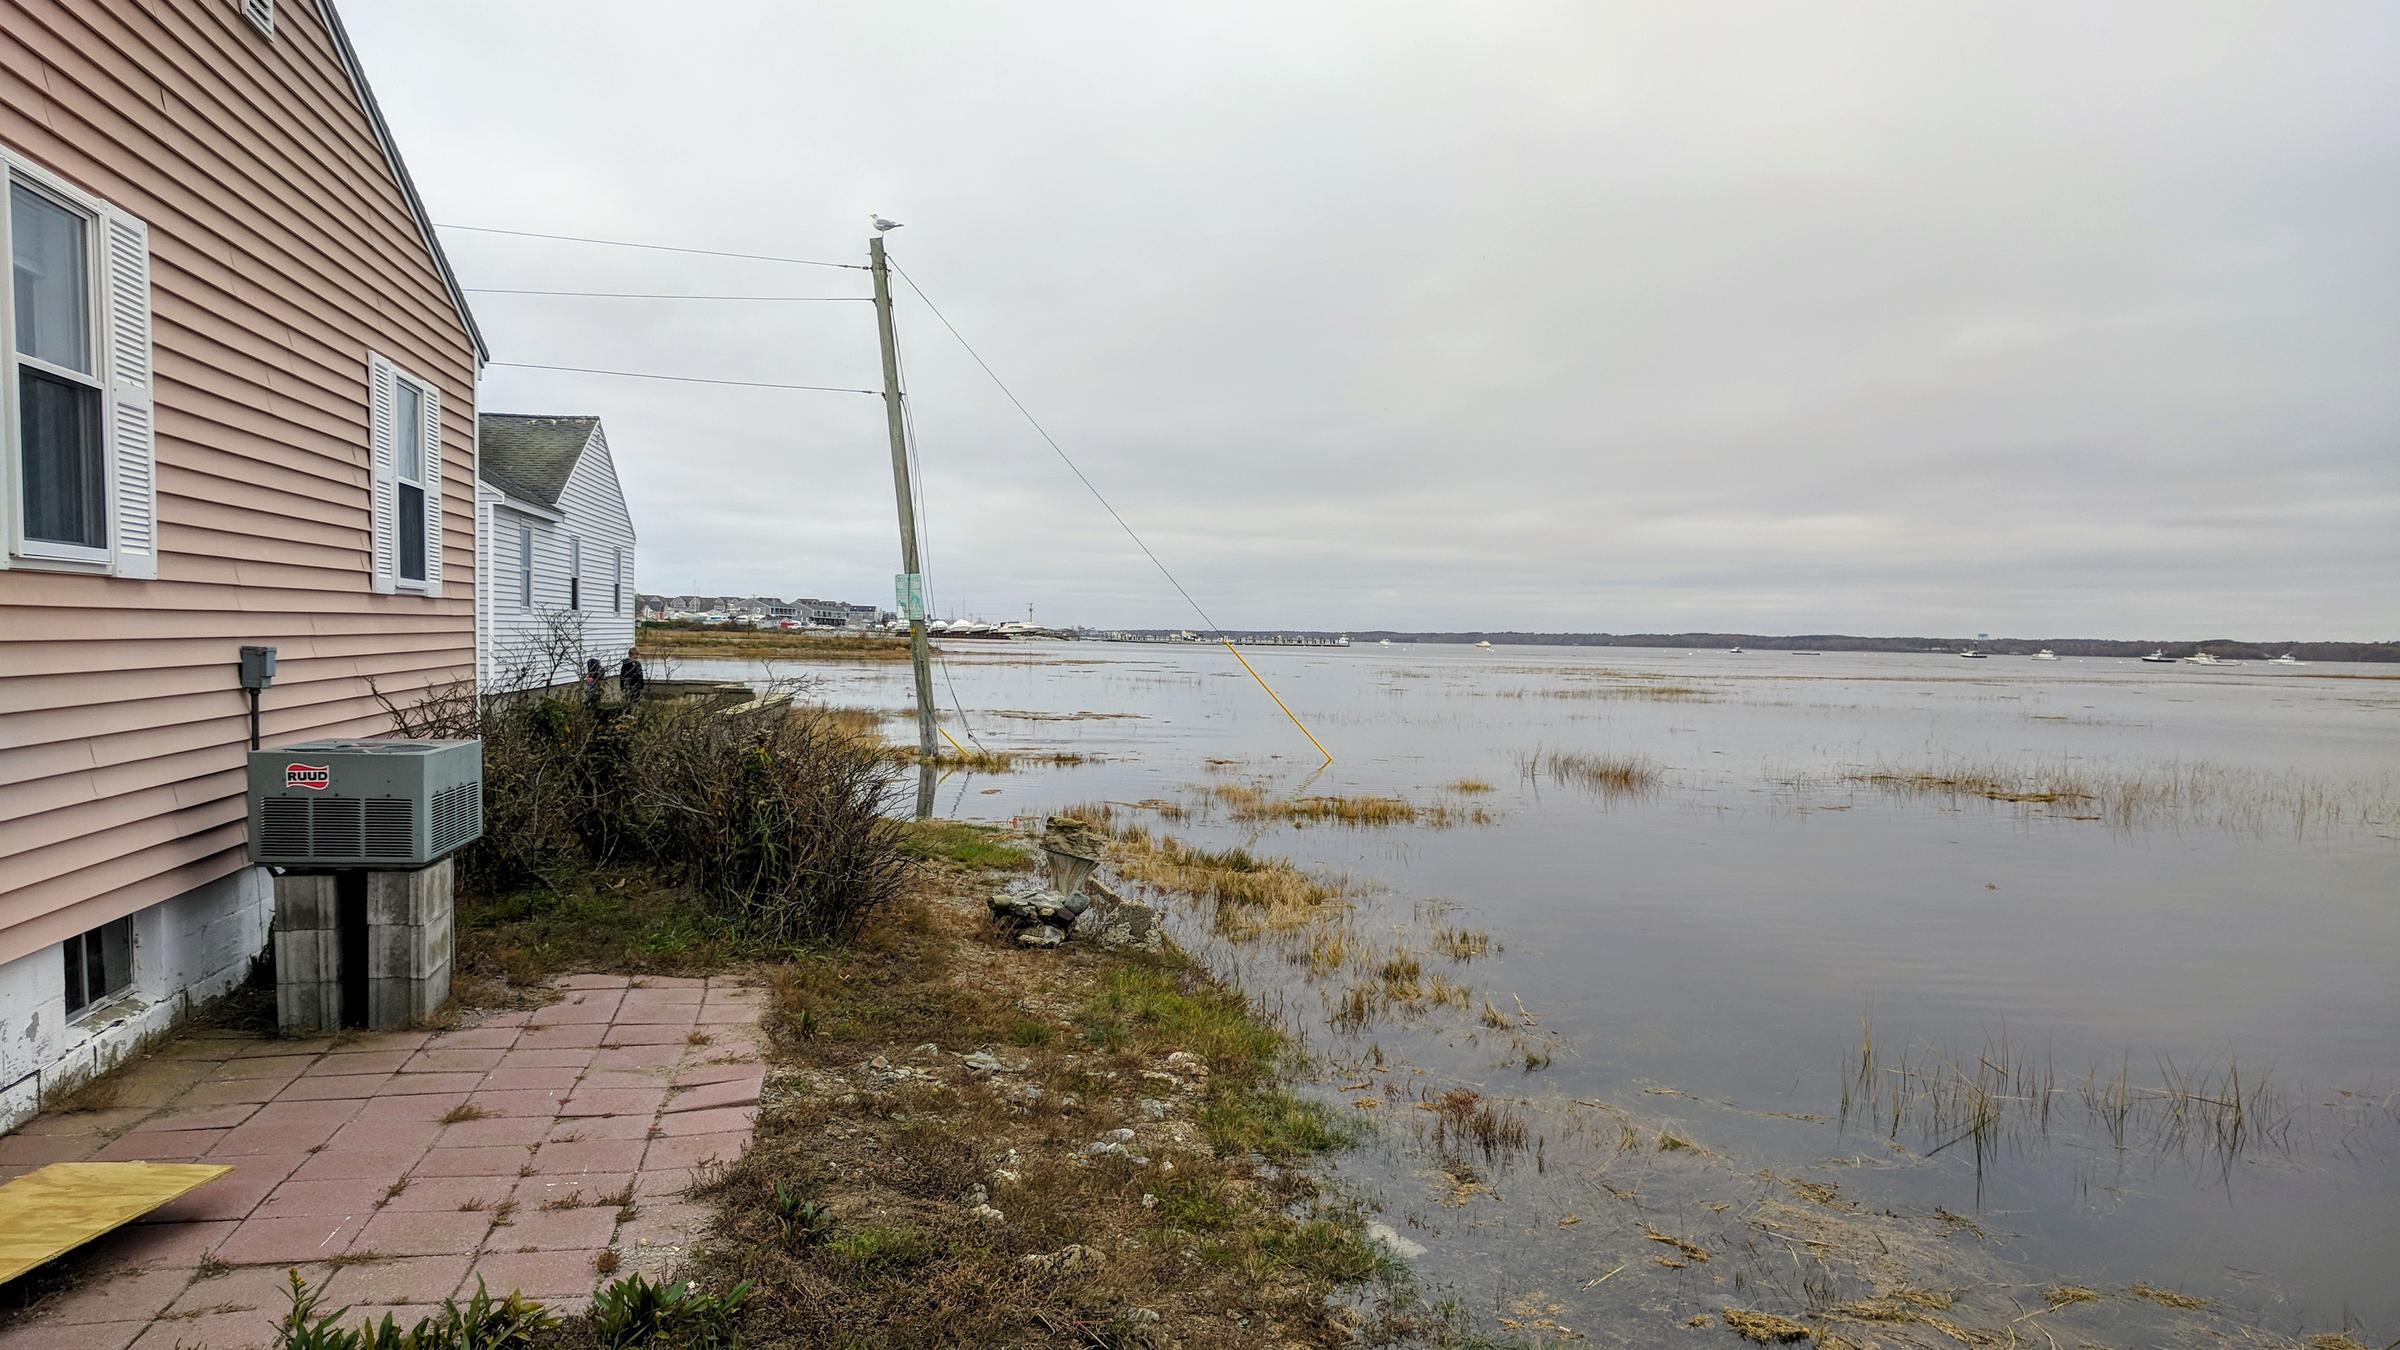 With king tide nhs coast gets a preview of higher seas future the end of hobson avenue in hampton nvjuhfo Image collections